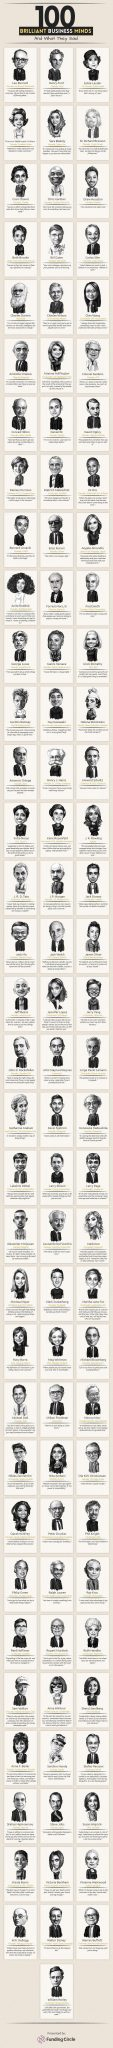 100 brilliant business minds infographic